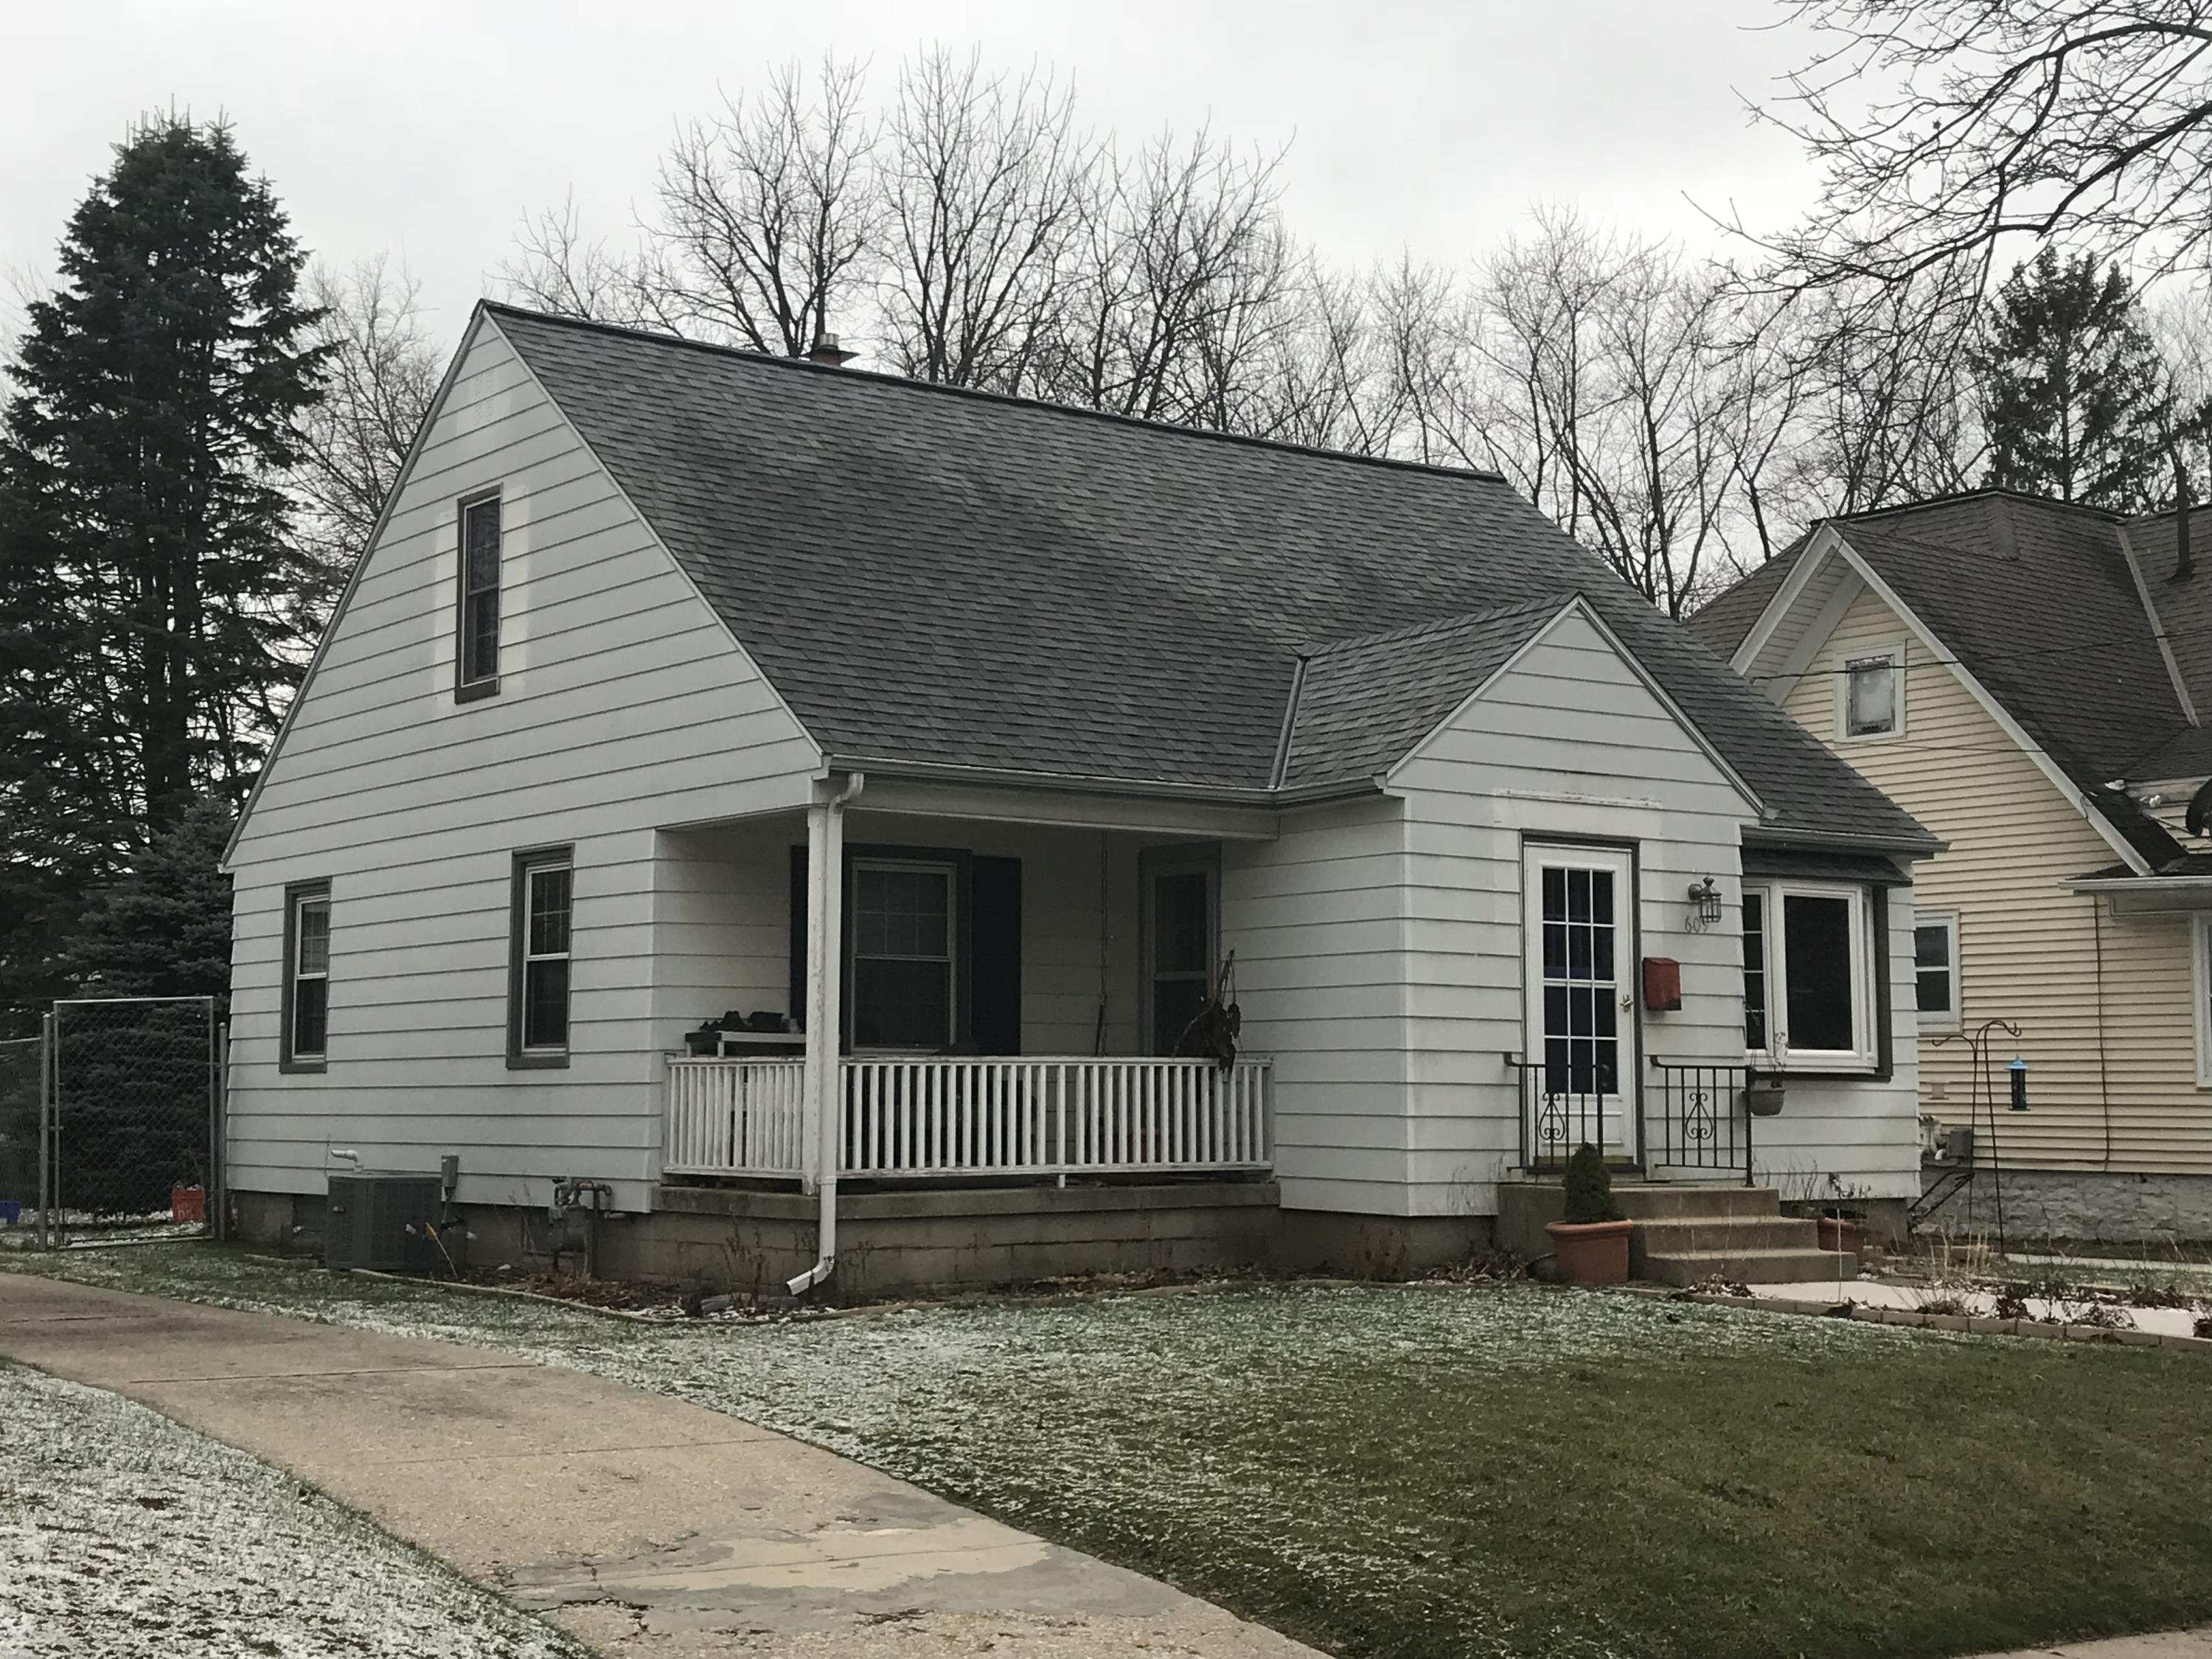 609 Beechwood Ave, Waukesha, Wisconsin 53186, 2 Bedrooms Bedrooms, 5 Rooms Rooms,1 BathroomBathrooms,Single-Family,For Sale,Beechwood Ave,1616200